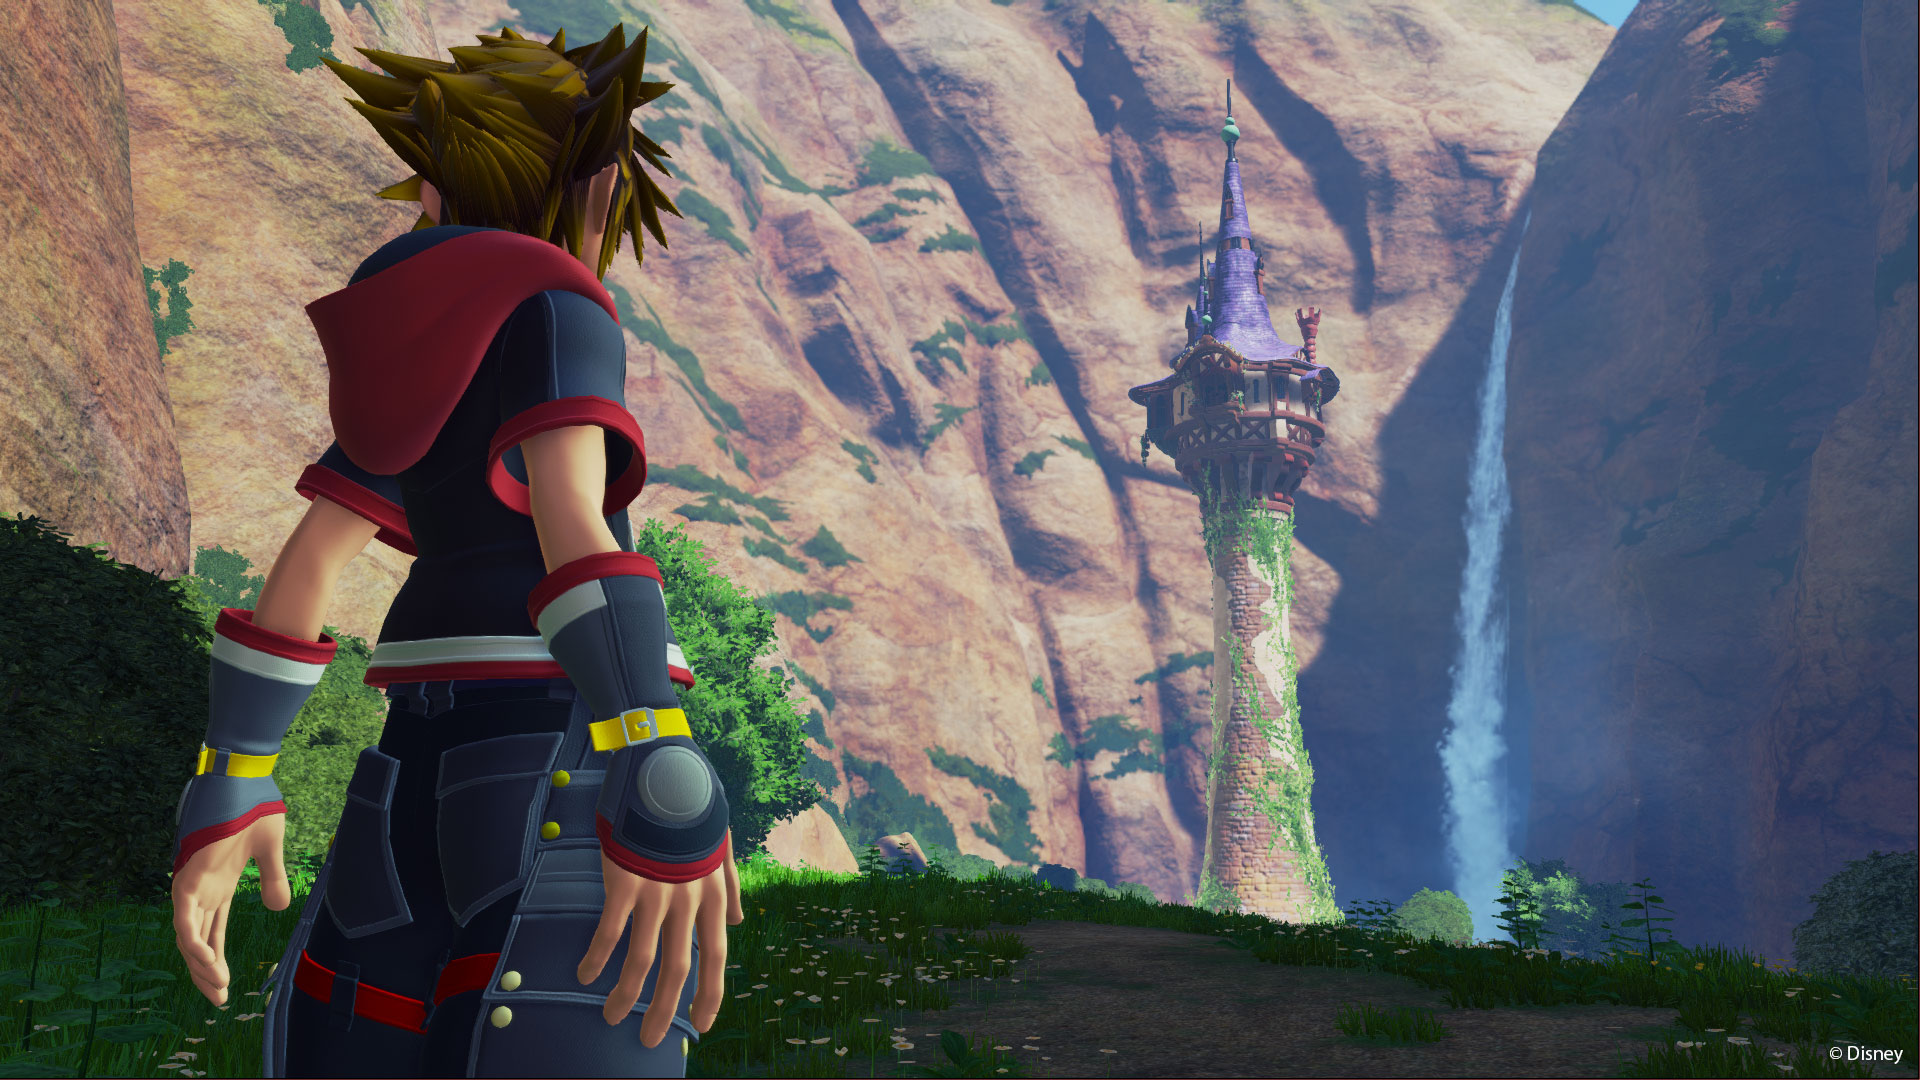 kingdom-hearts-3-images-003